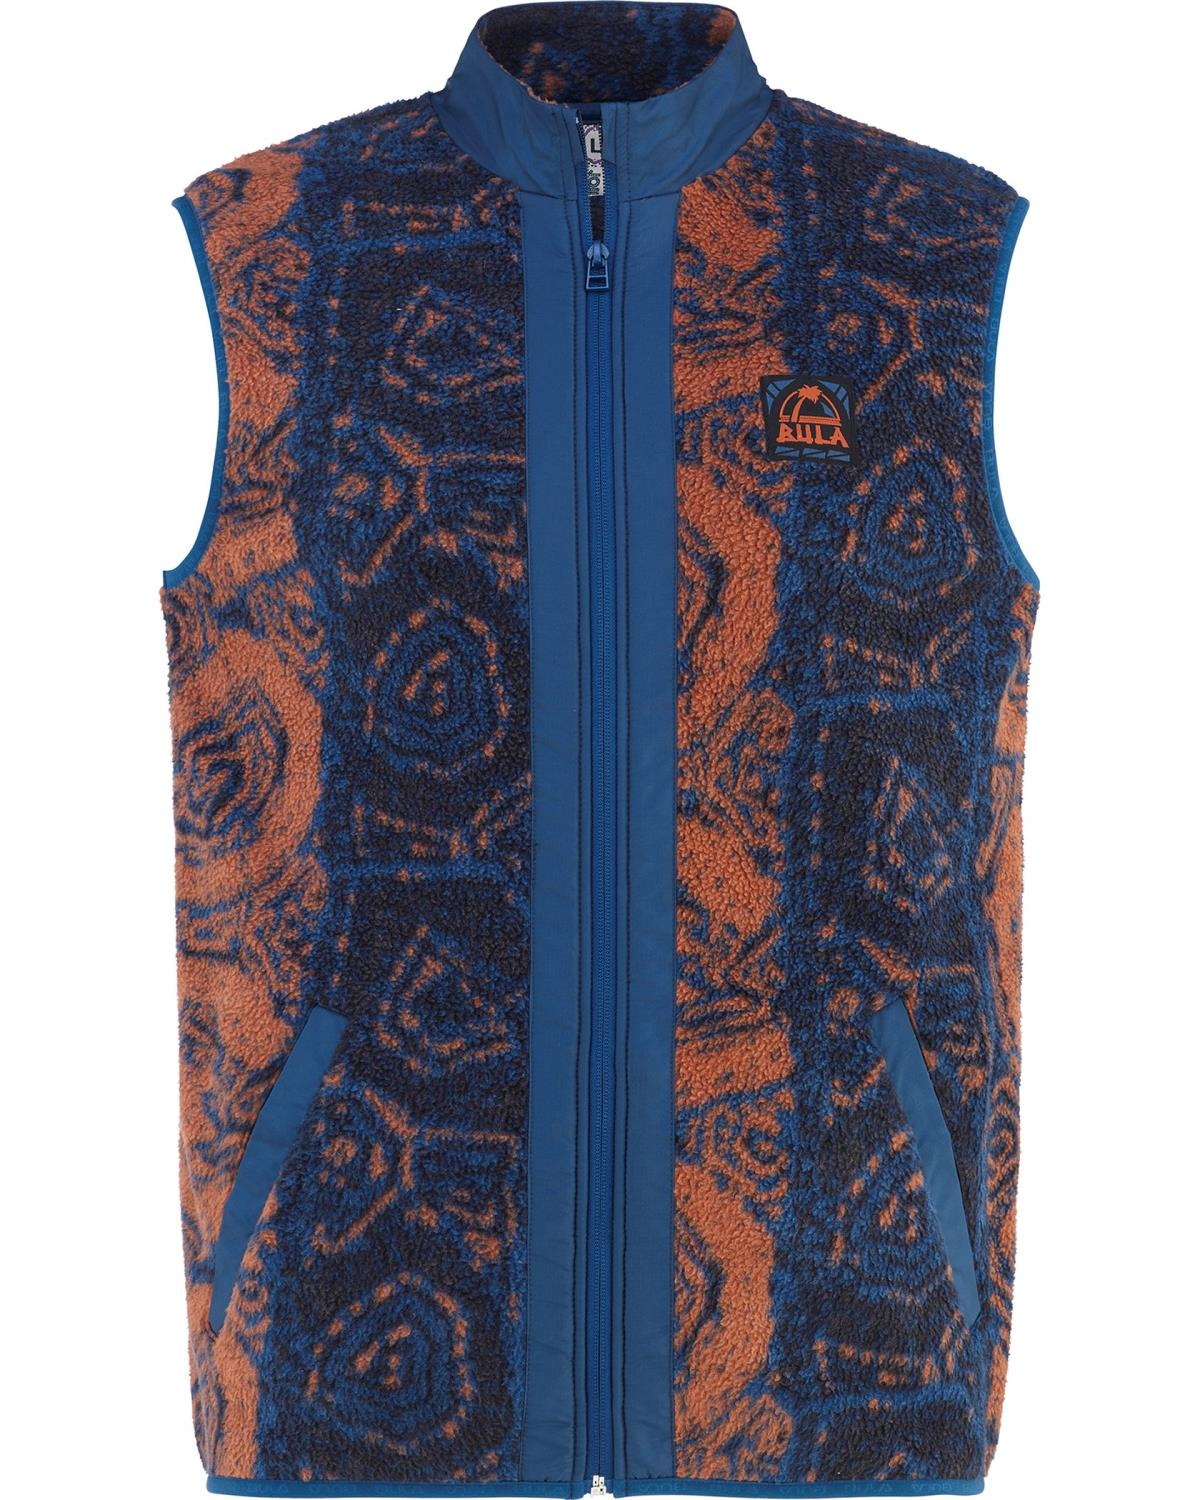 BULA Legacy Fleece Vest